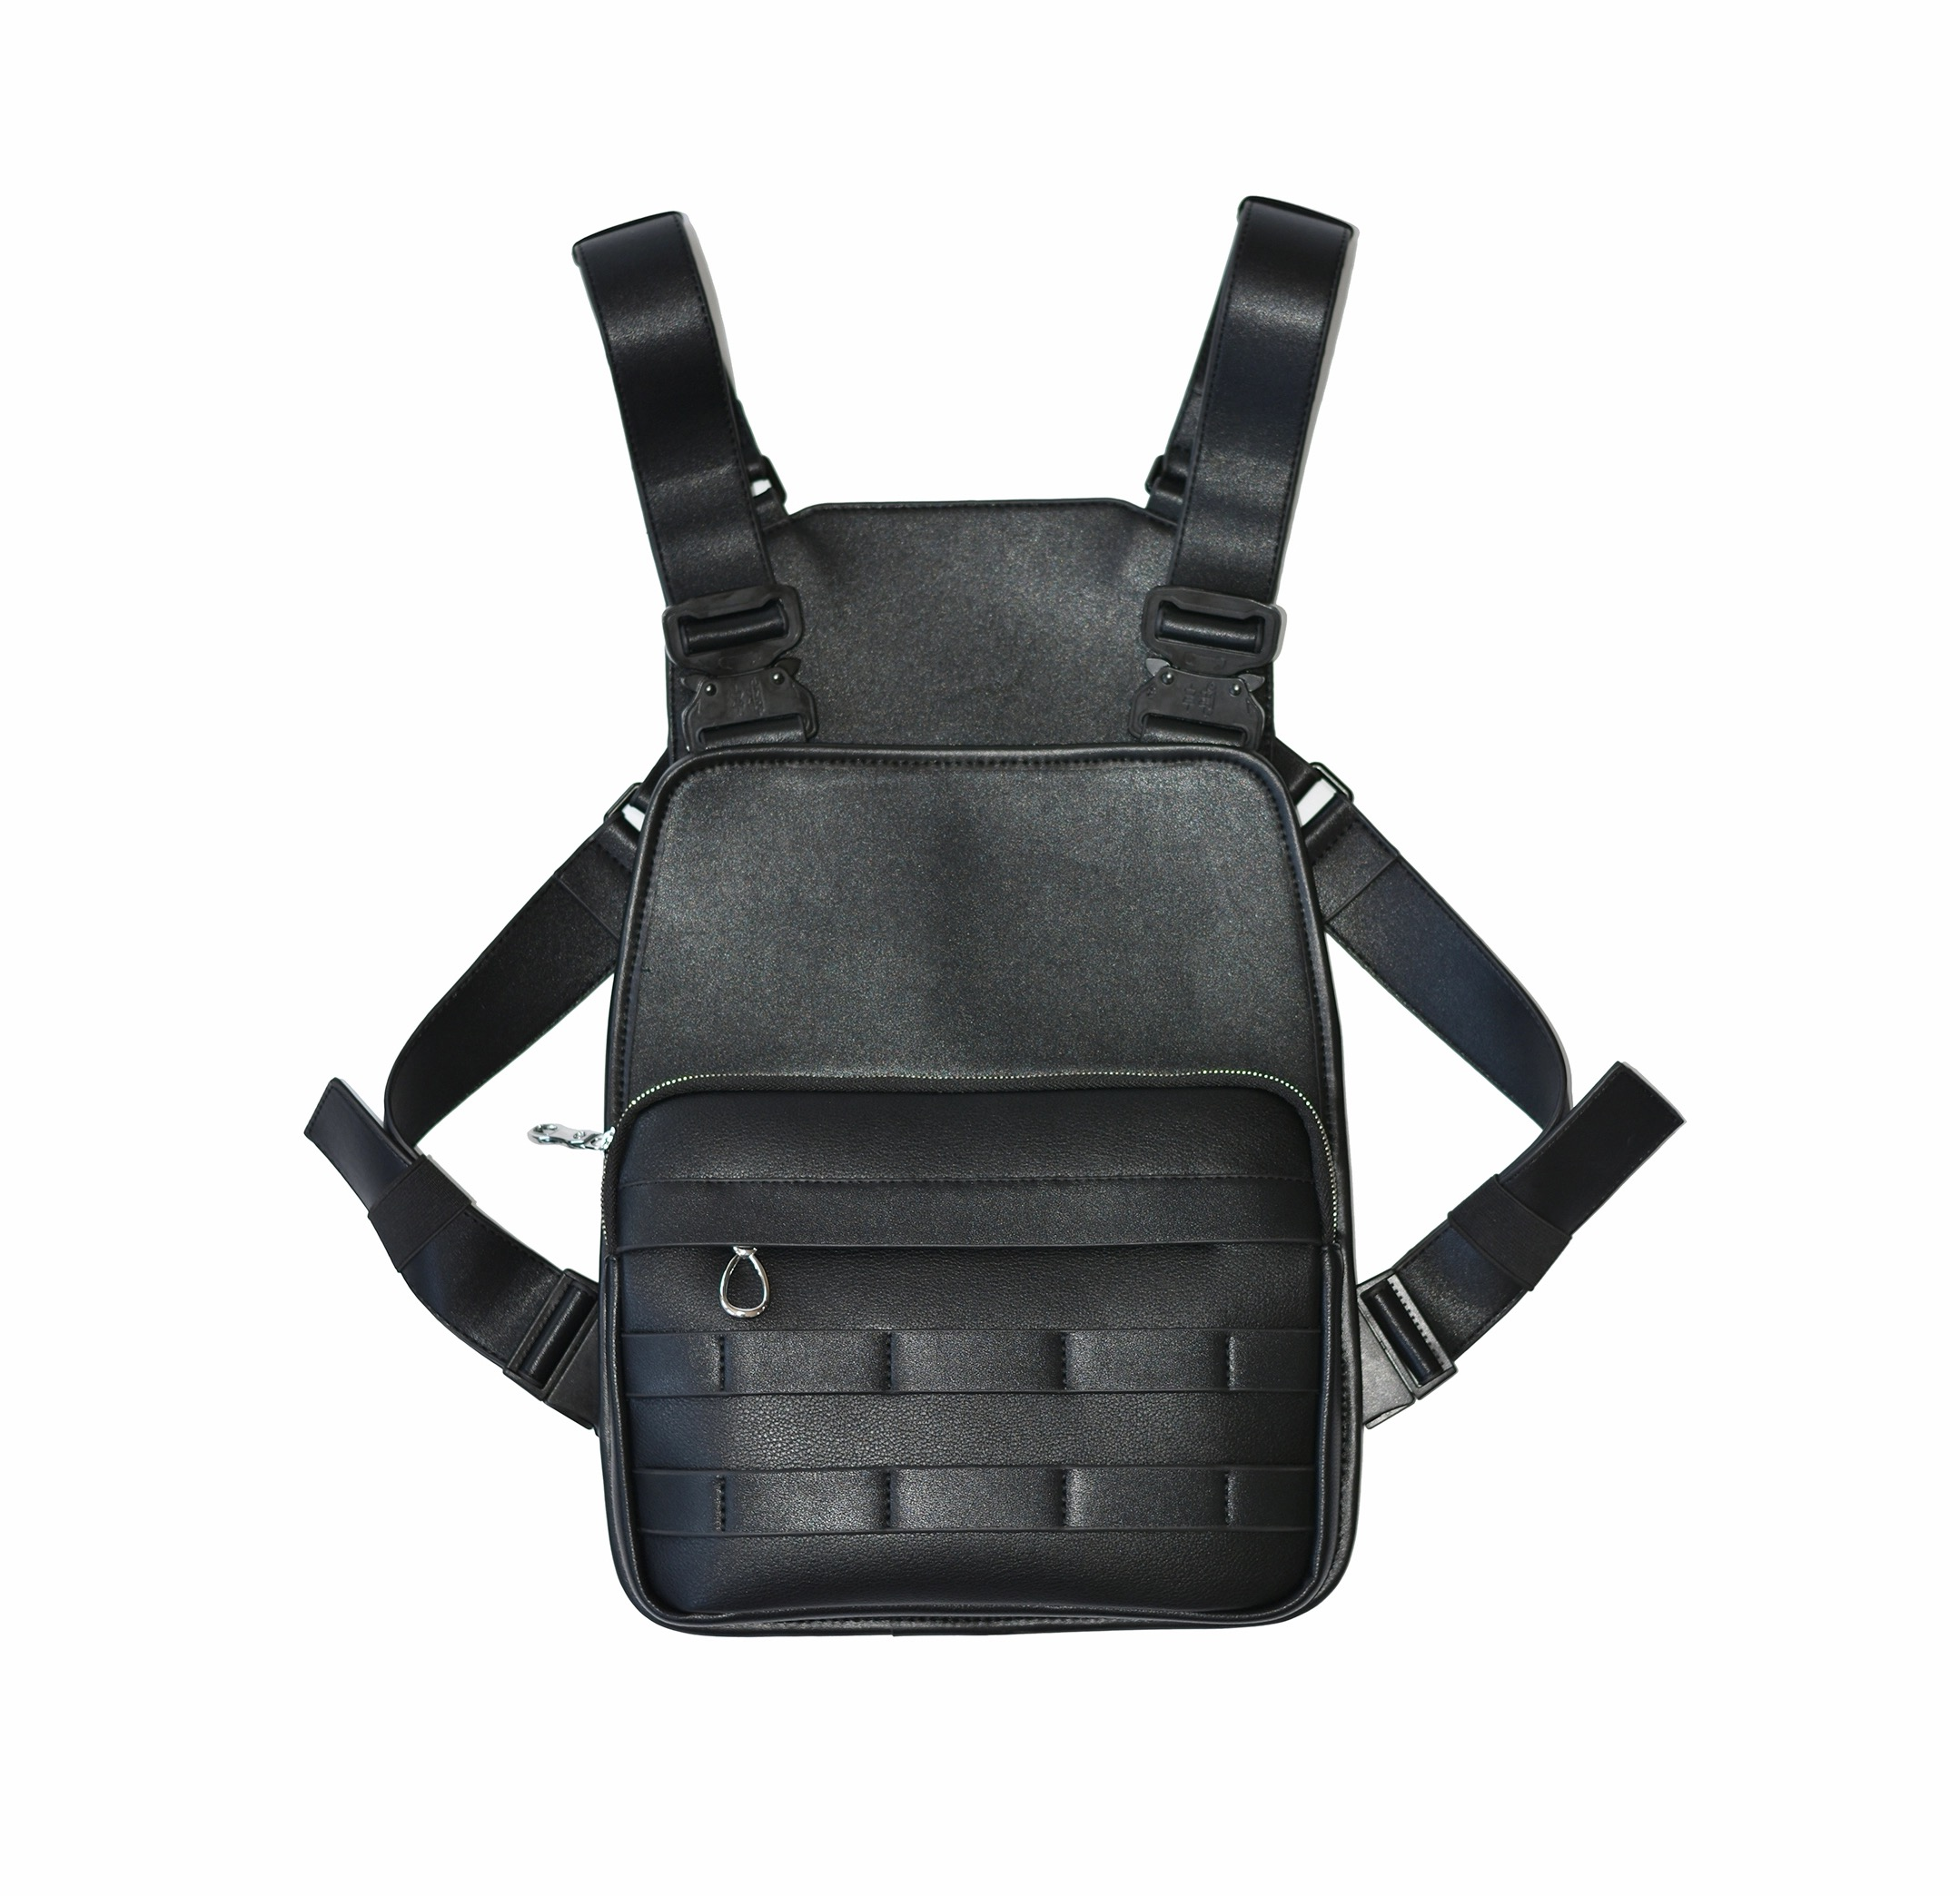 2019 hot selling in Amazon 2019 New Design Tactical Chest Rig <strong>Bag</strong> Military Vest Pouch EDC Combat <strong>Bag</strong> with Suspenders